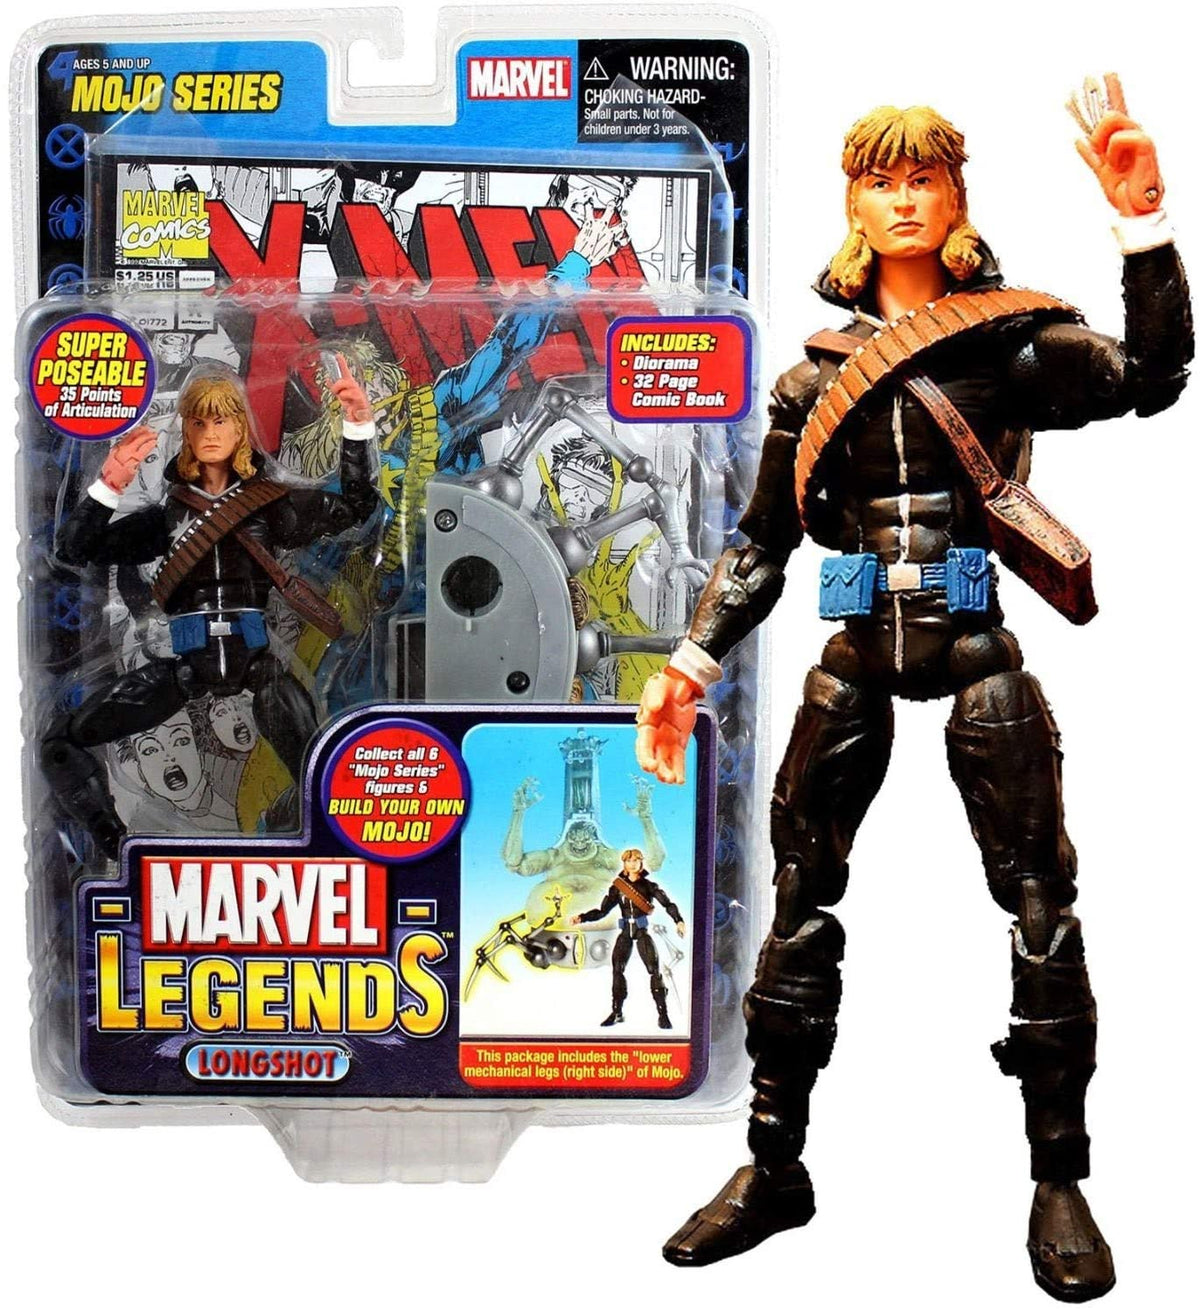 Marvel ToyBiz Year 2006 Legends Mojo Series 6 Inch Tall Figure